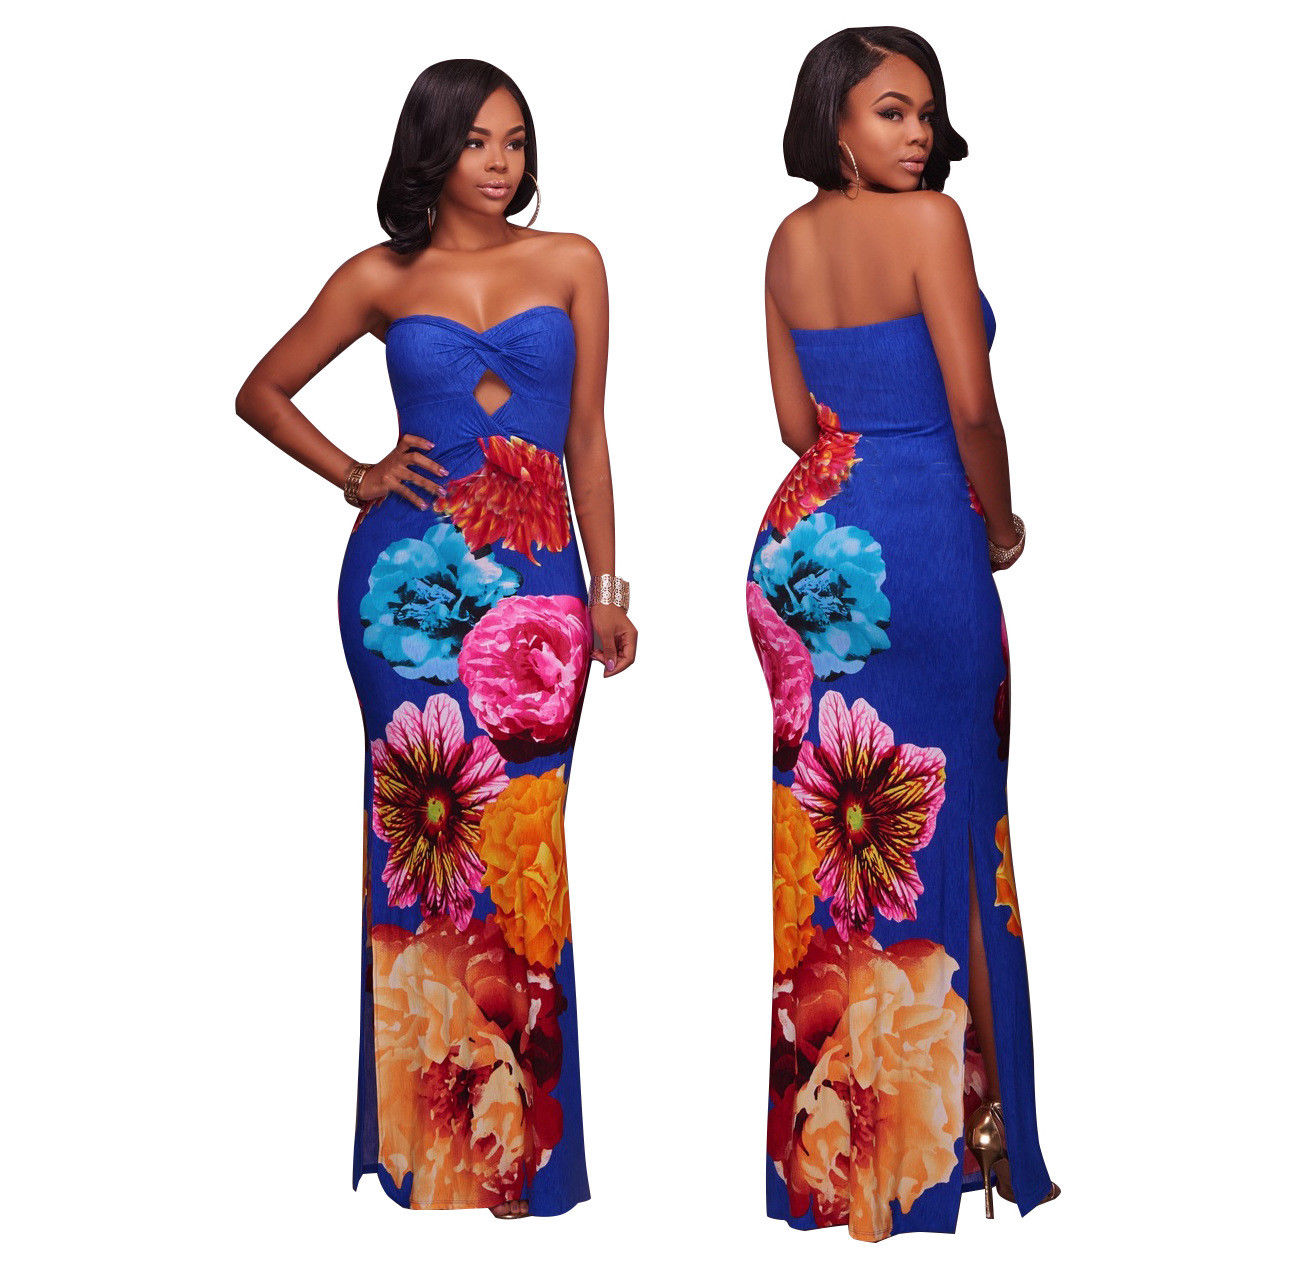 d585d0d9297059 ... PLUS SIZE TUBE TOP FLORAL MULTI PRINT SPLIT MAXI DRESS Return to  Previous Page. New. lightbox